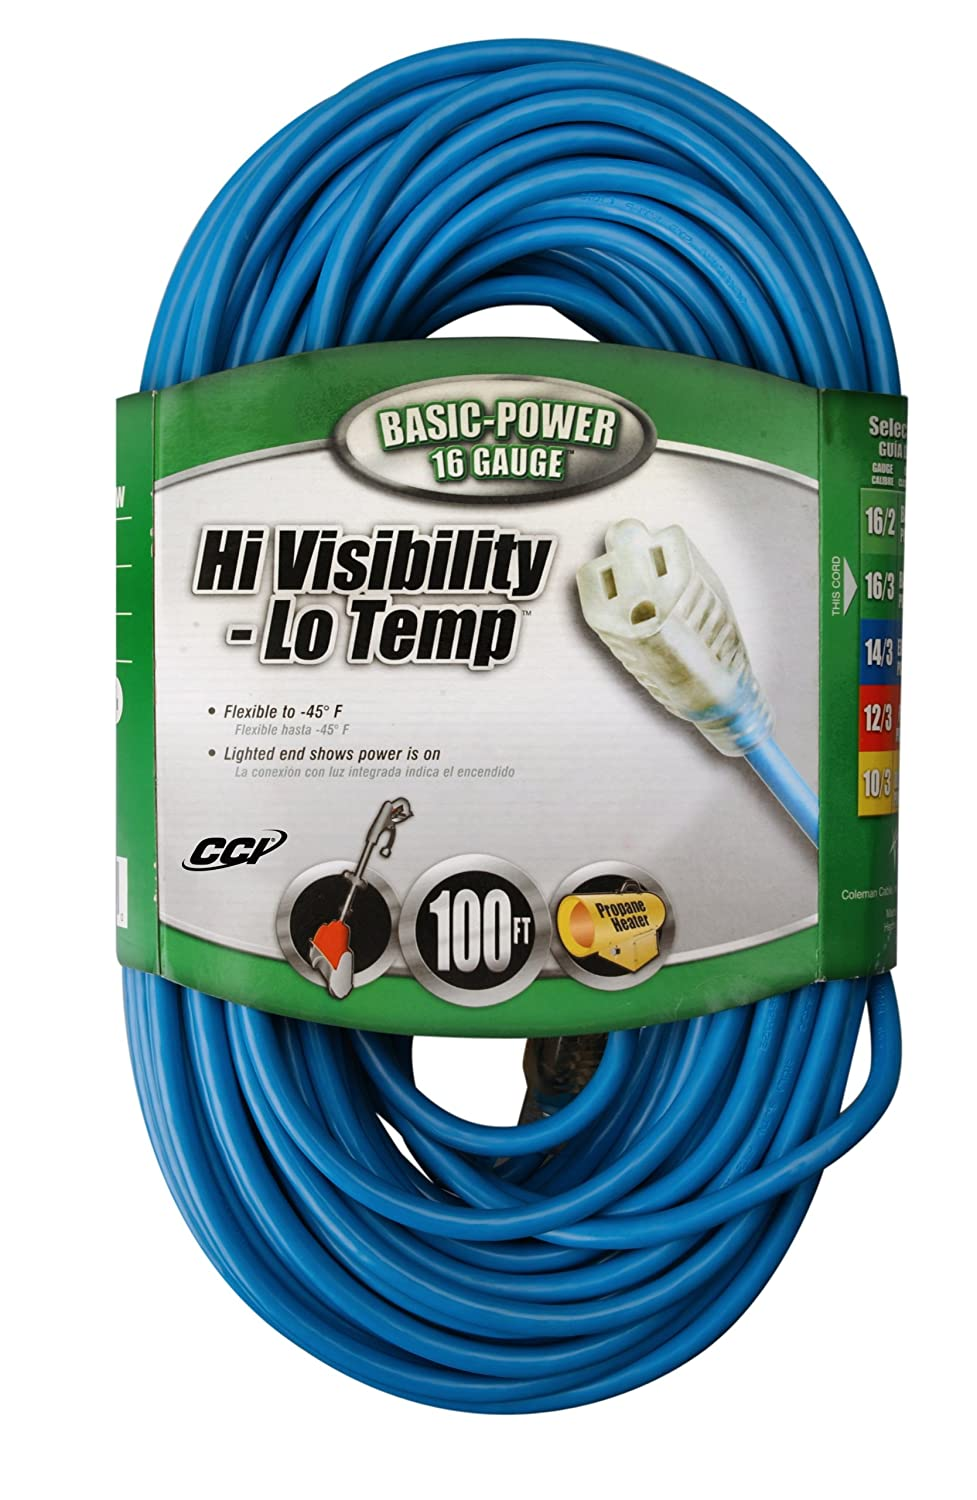 Coleman Cable 2369 16/3-Gauge High Visibility and Low Temperature Outdoor Extension Cord, 100-Feet, Blue 23698806